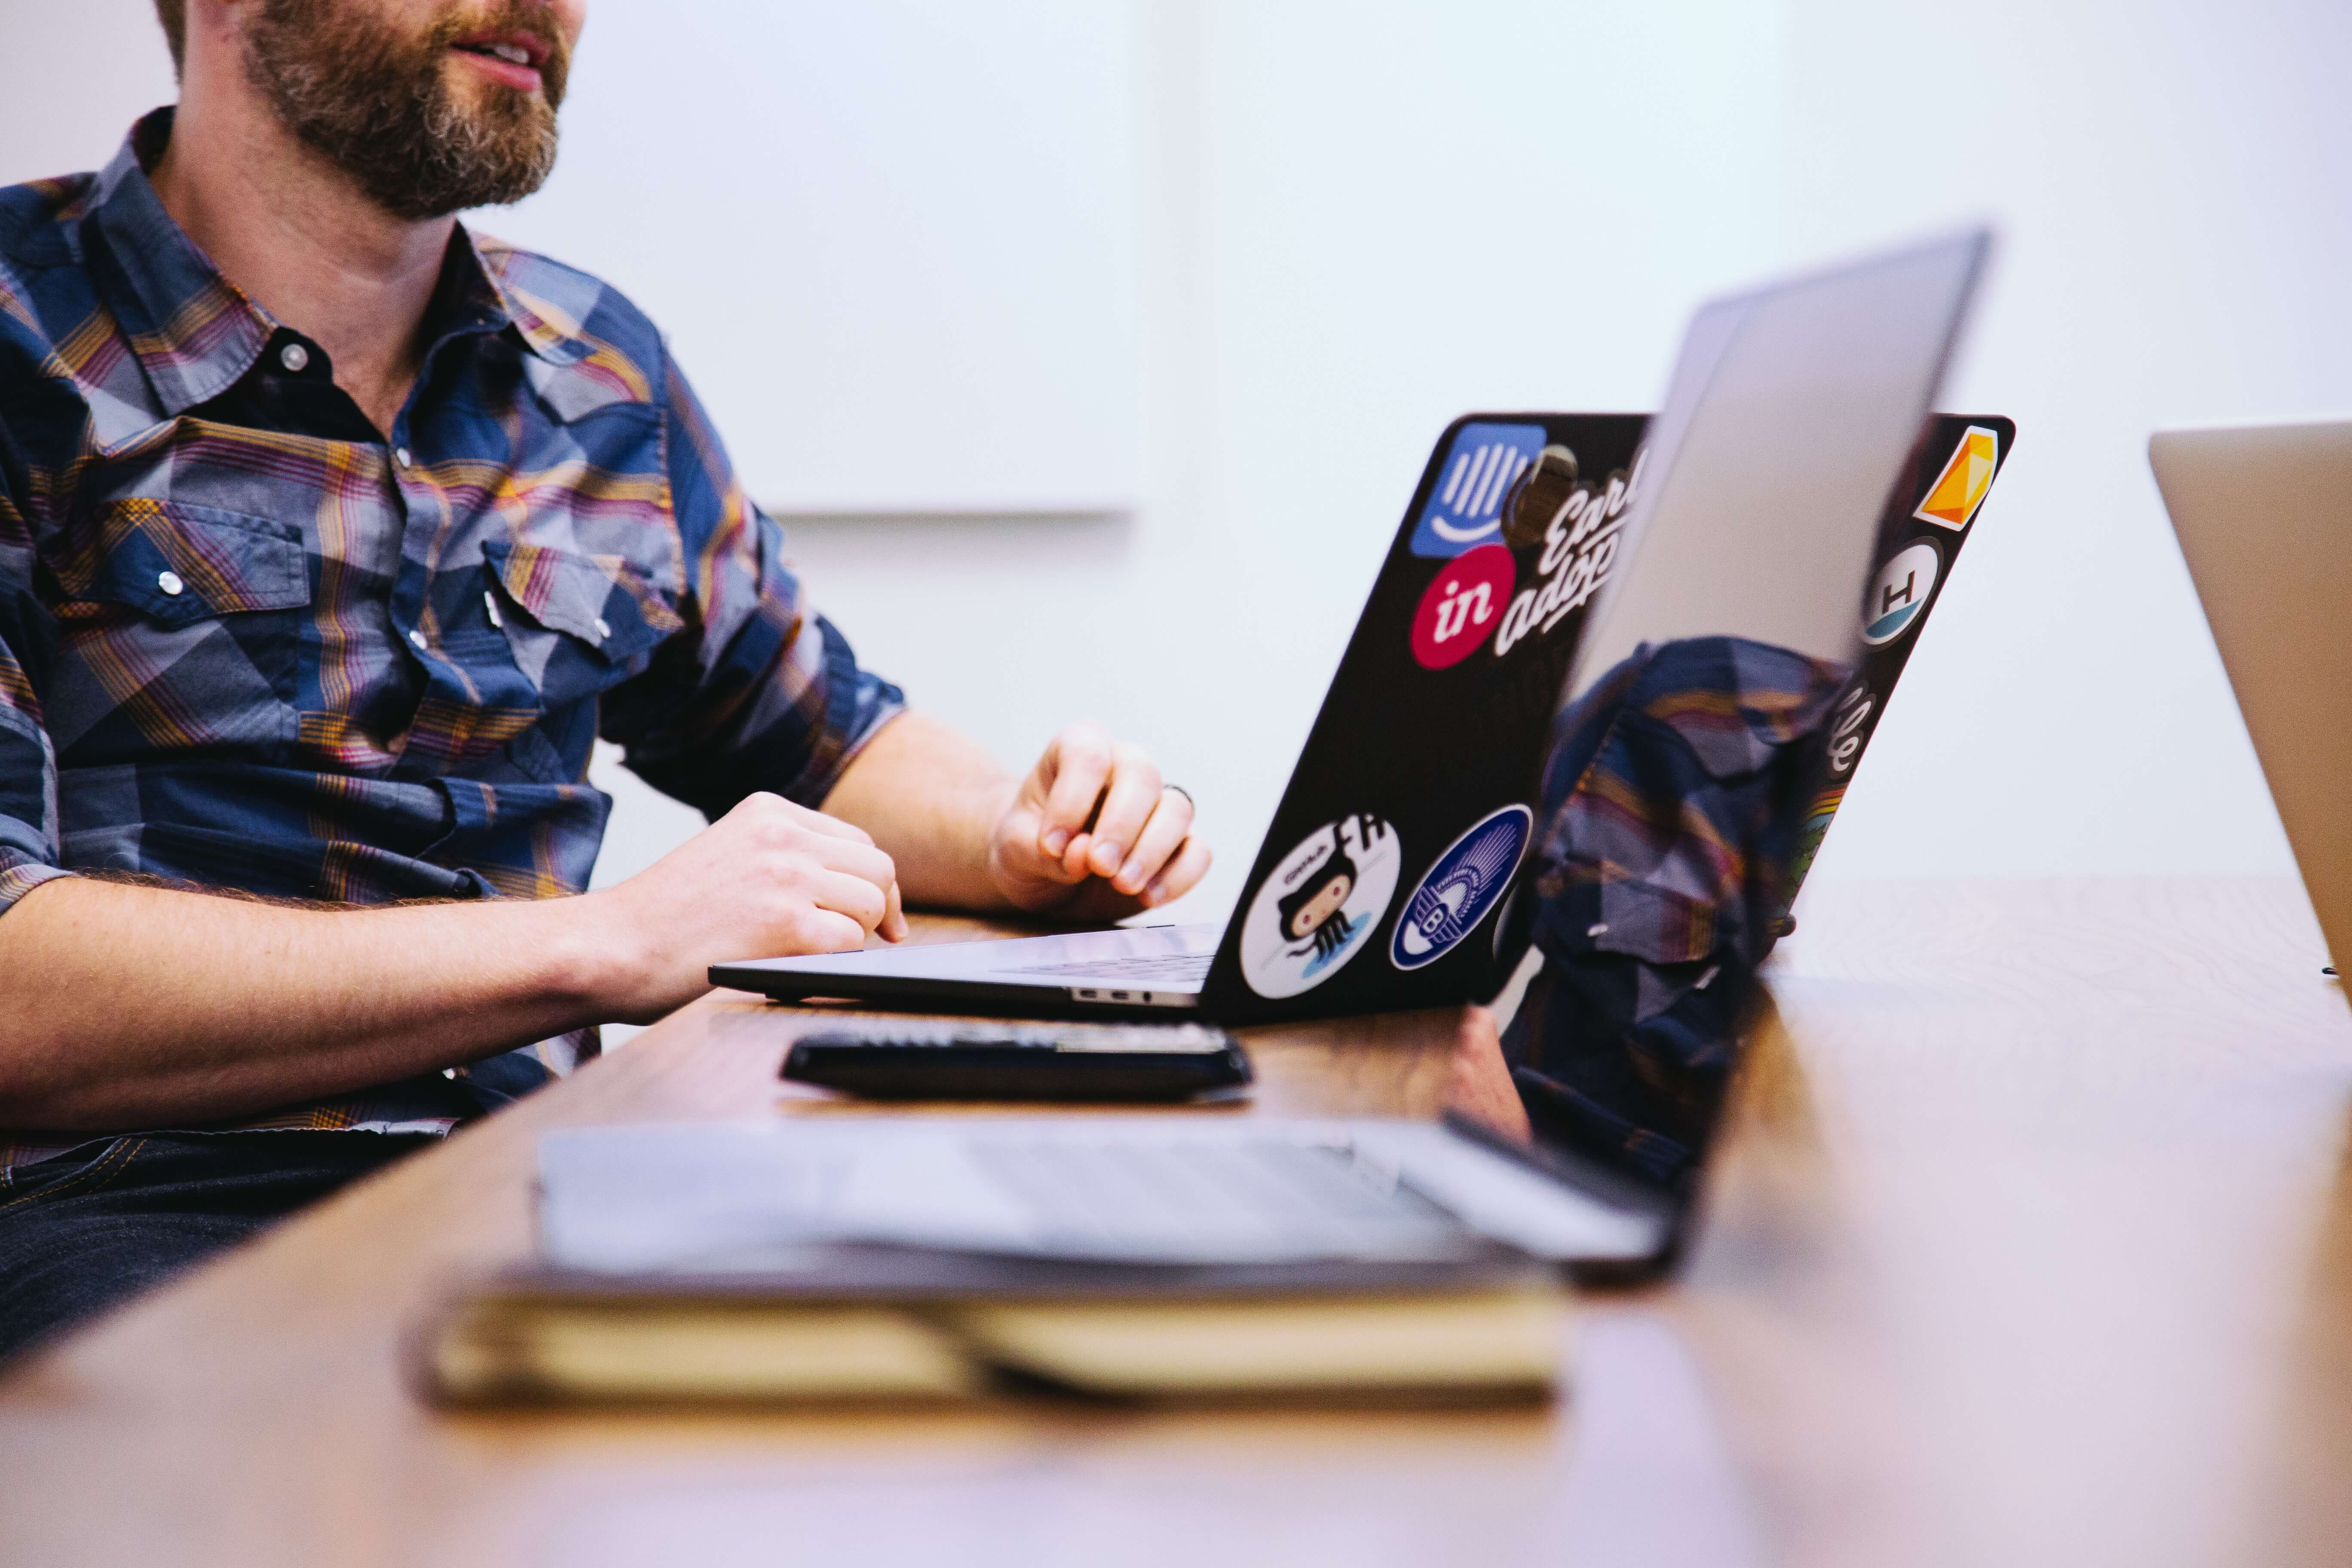 Best Laptop For Office Work: Business and Working From Home